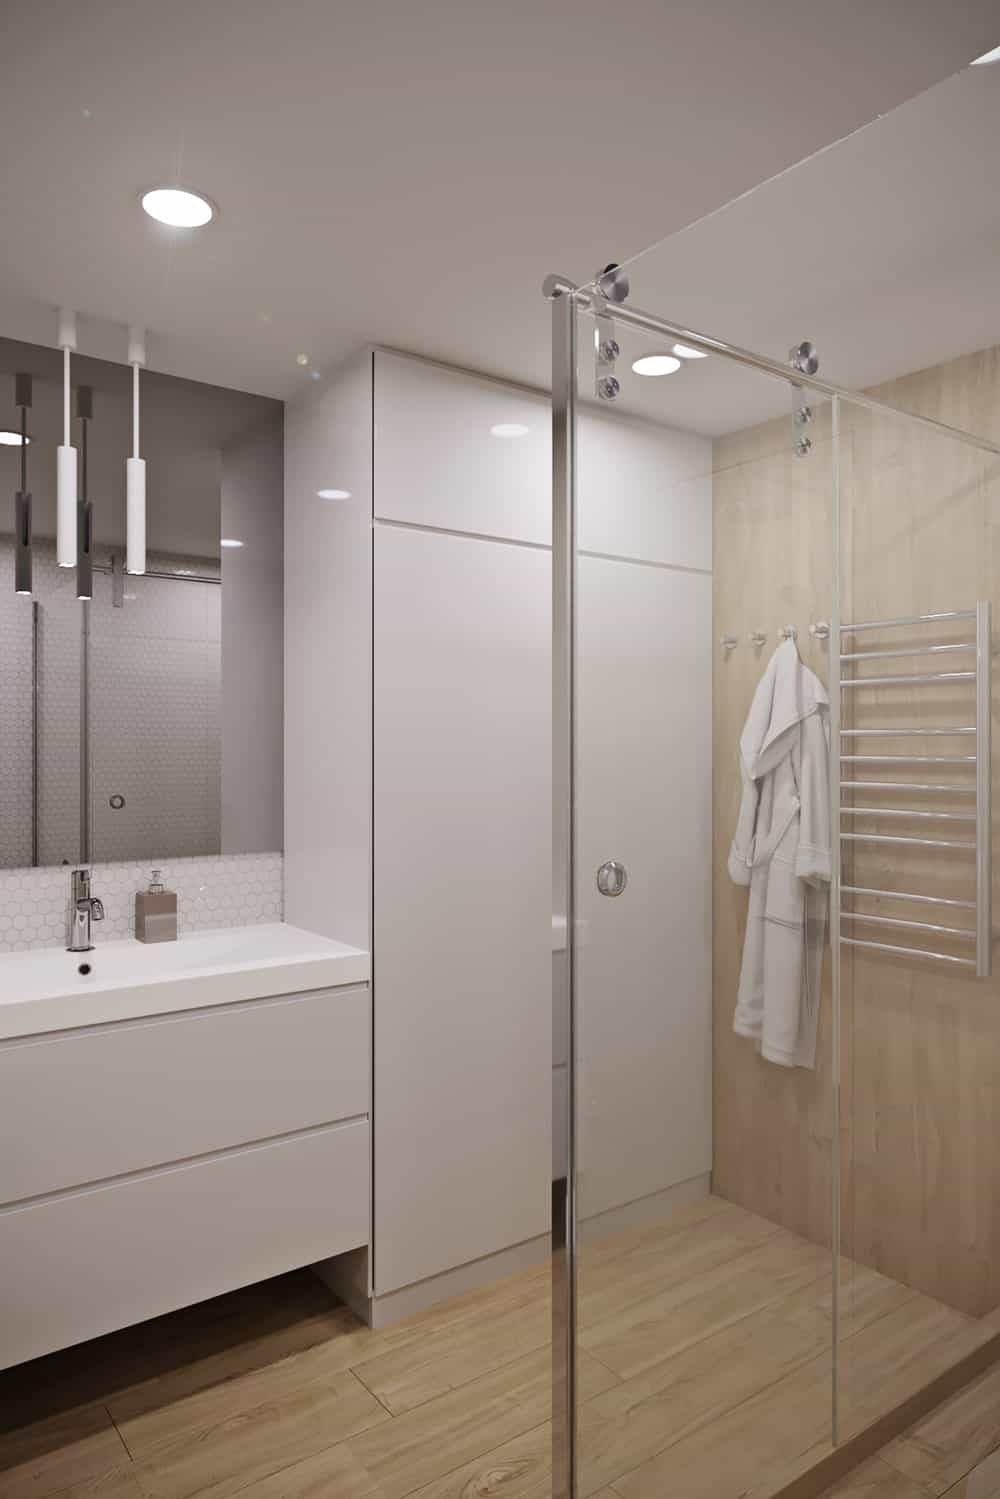 This is the view of the bathroom from the vantage of the toilet showcasing more of the glass enclosed shower area and the bright beige floating vanity with modern cabinetry.